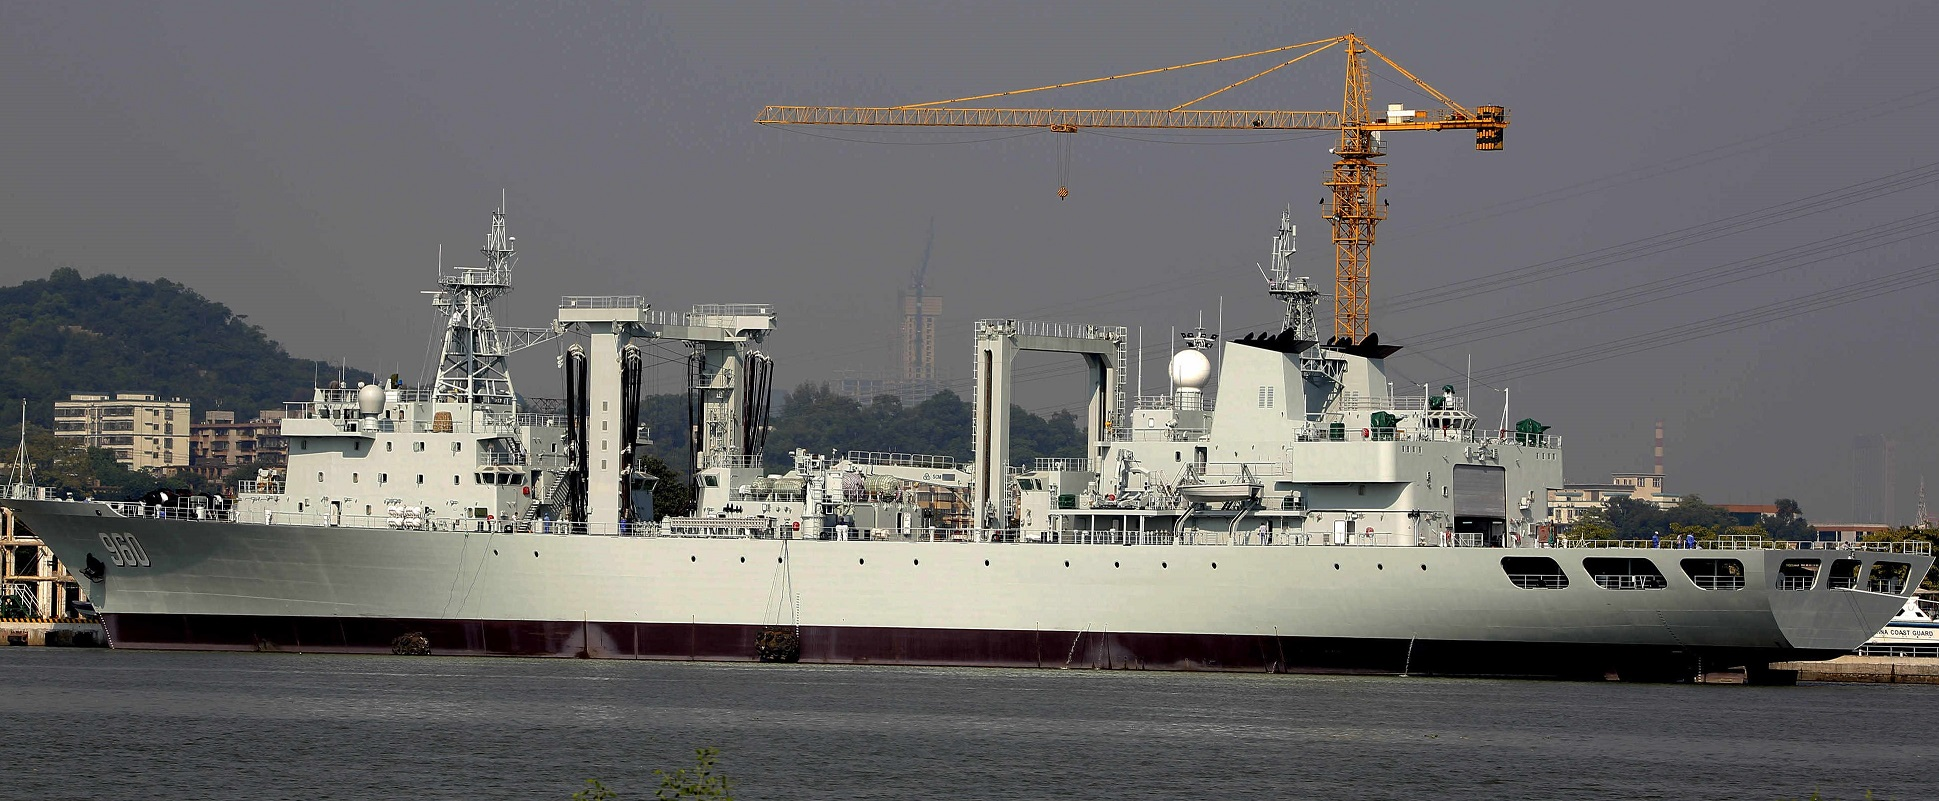 type_903a_replenishment_ship_aoe_960_ready_to_be_inducted_by_the_end_of_2015_22791863775